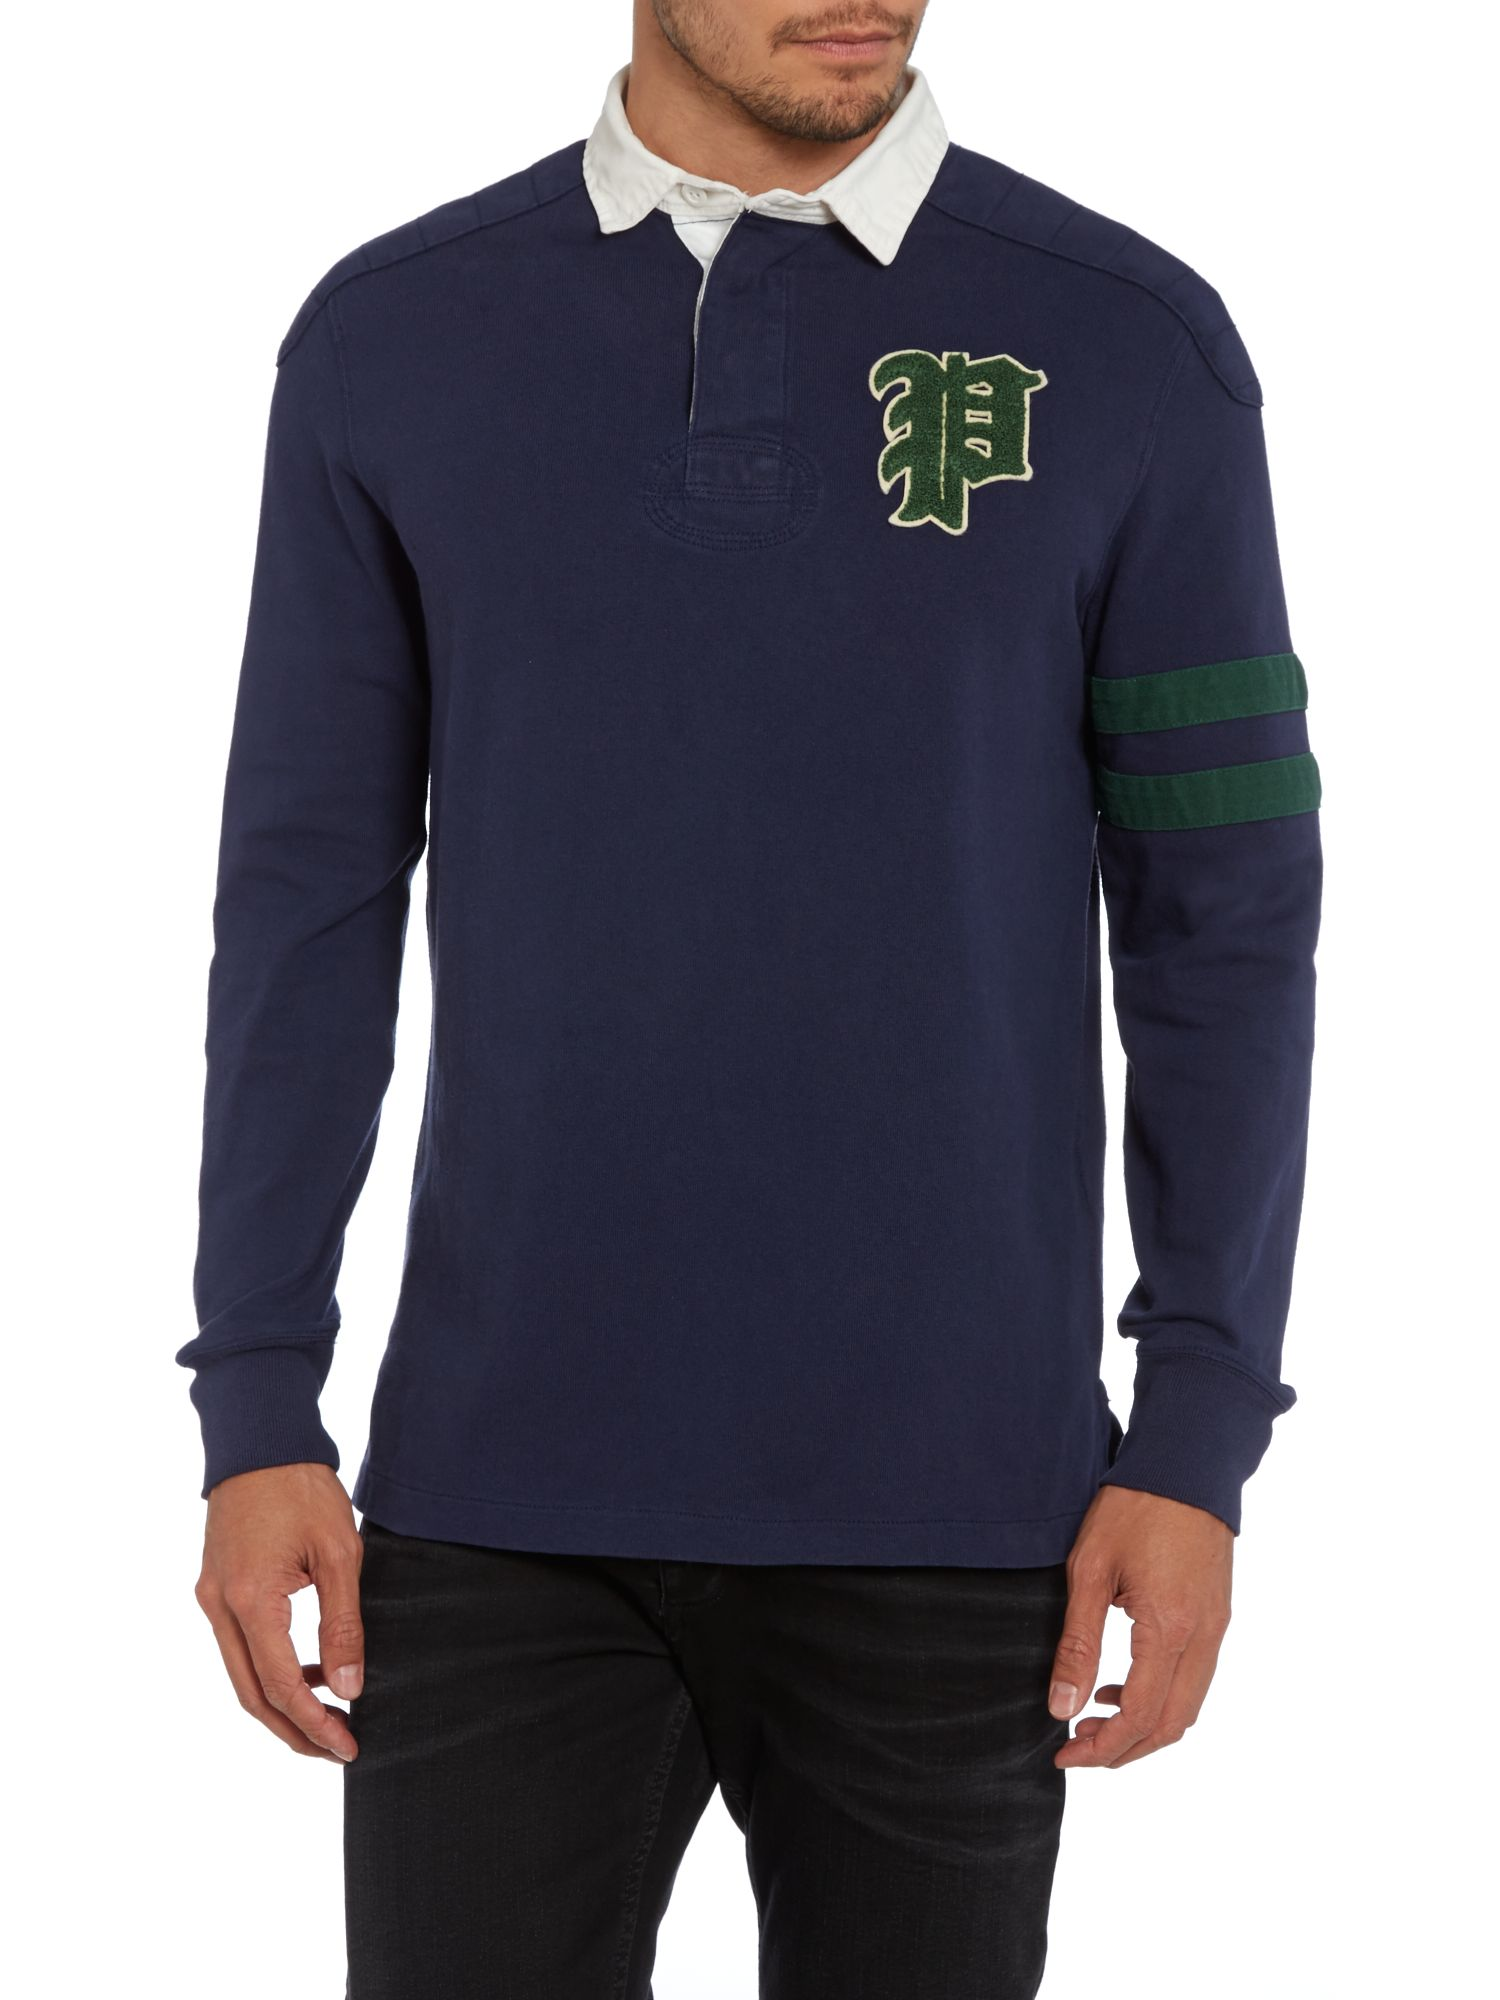 Long sleeve rugby shirt with shoulder patch